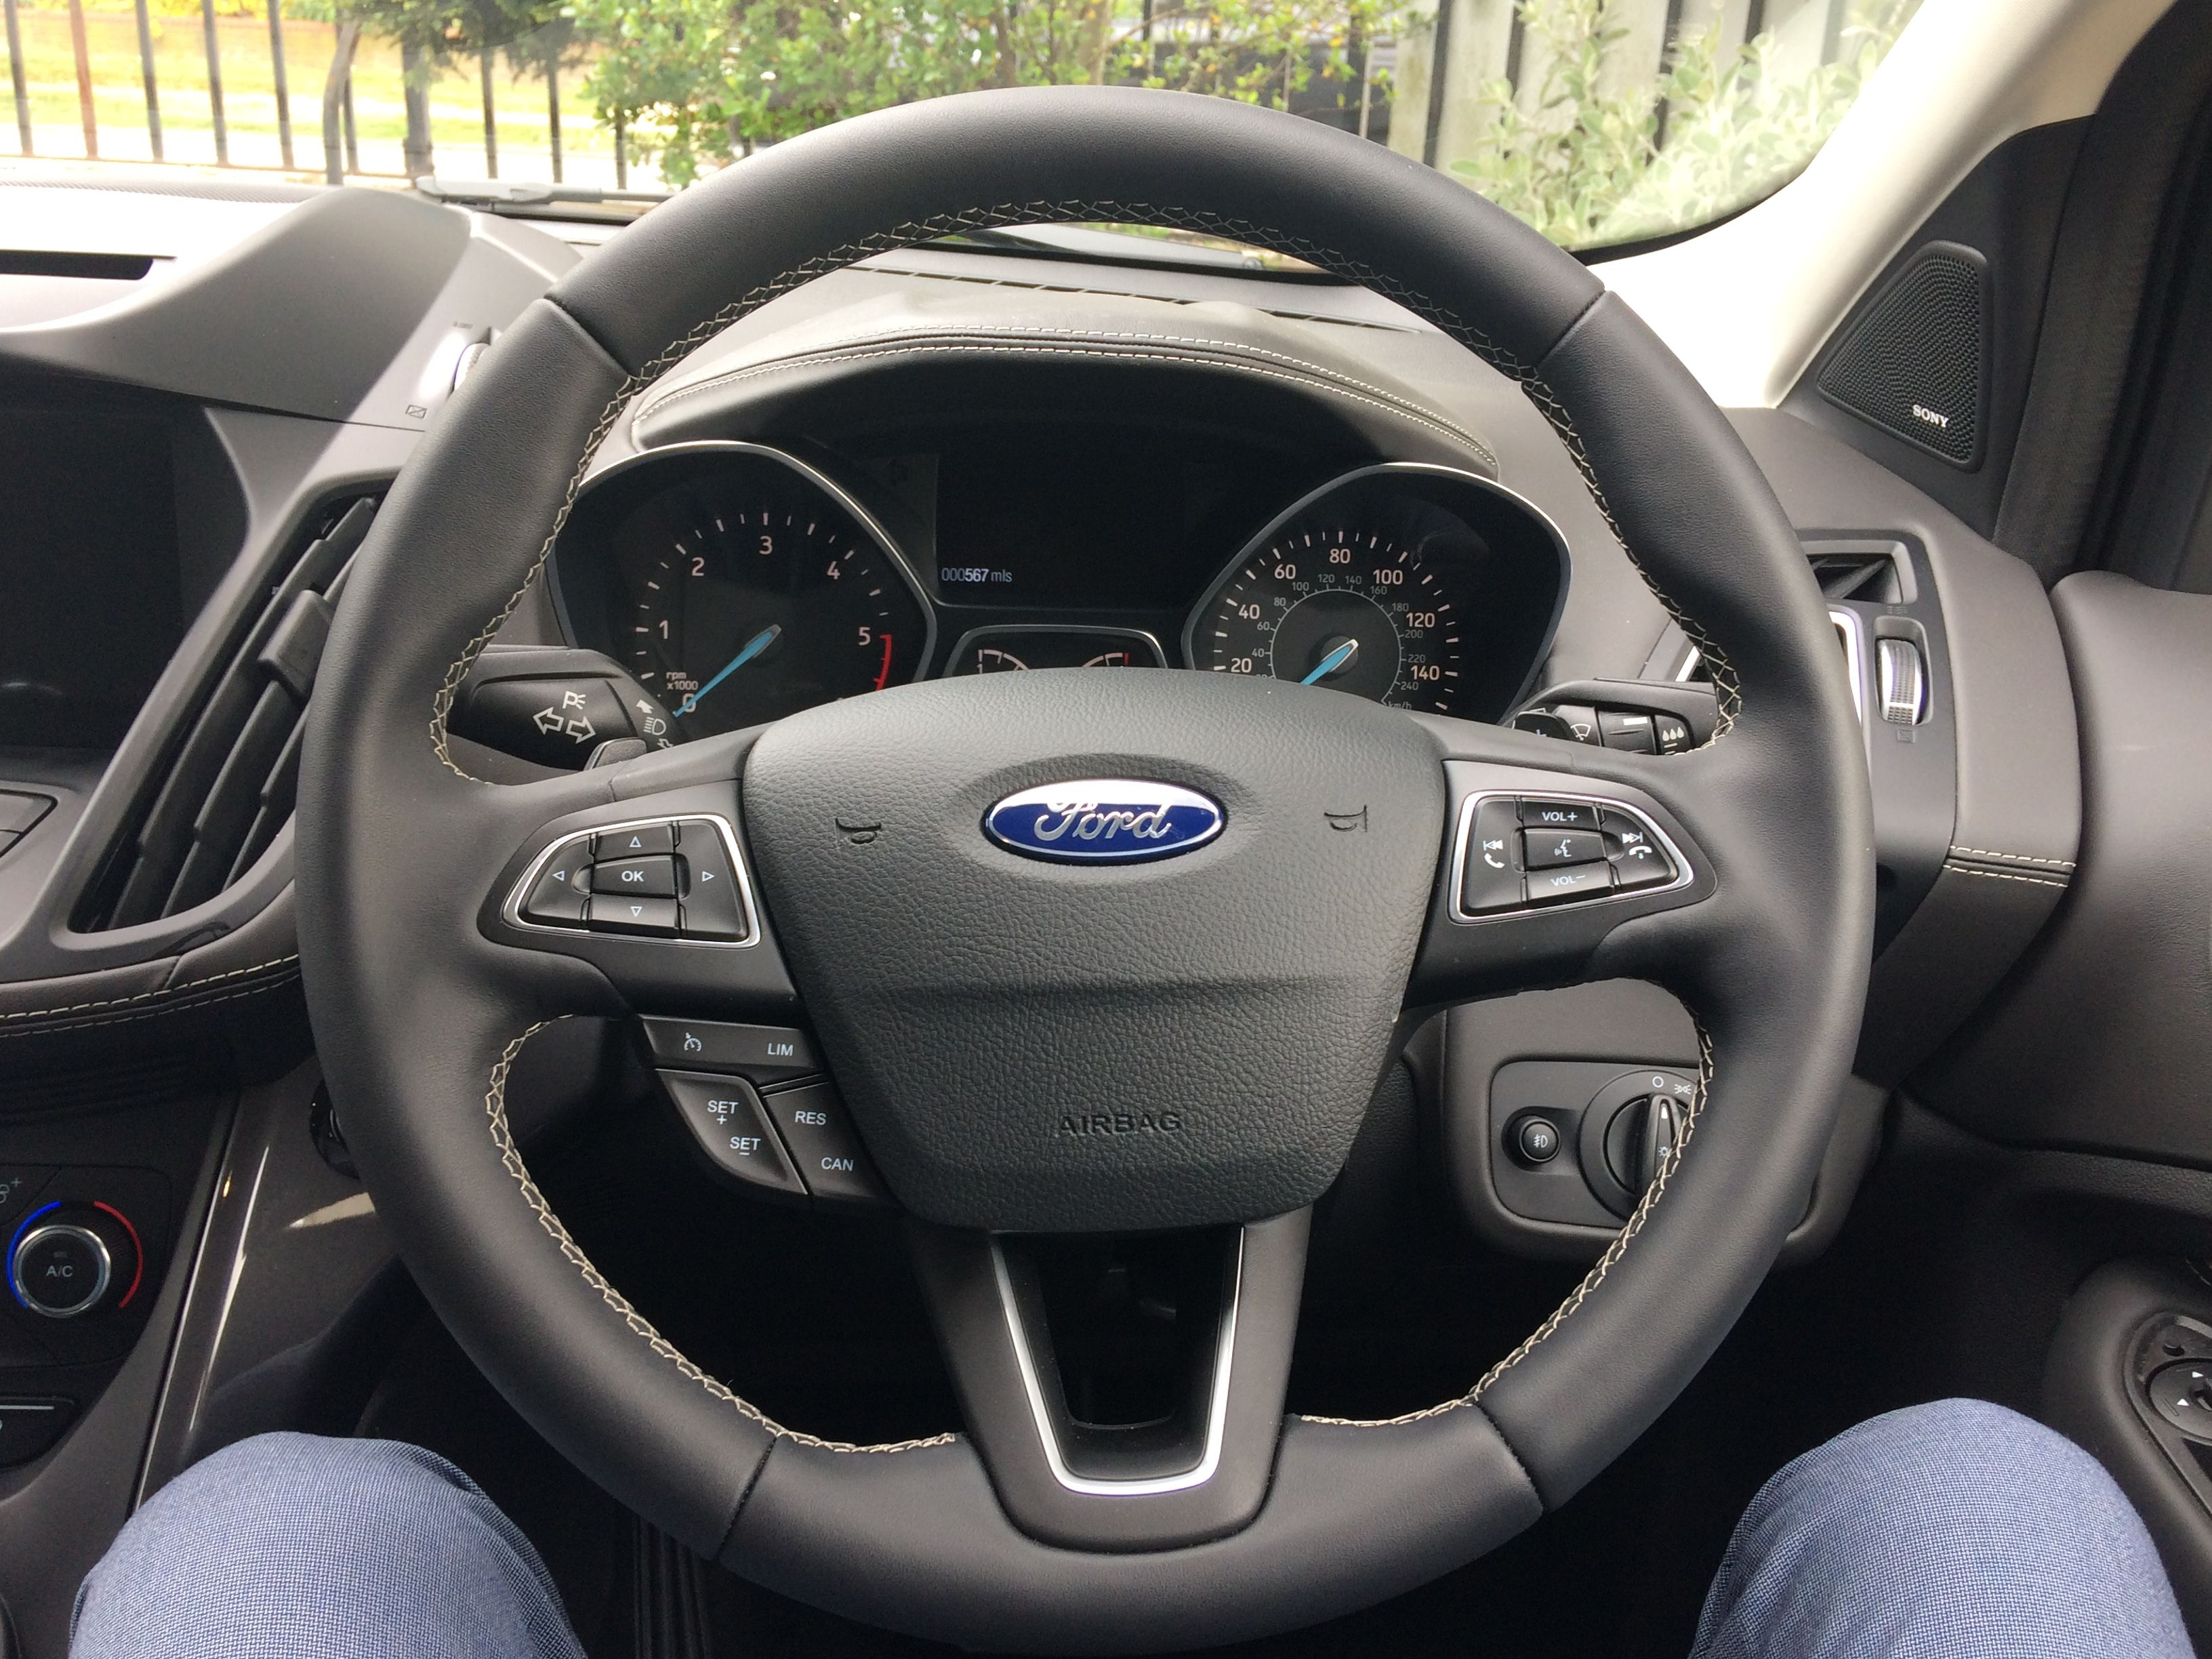 The Ford Kuga Leasing Deal One Of The Many Cars And Vans Available To Lease From Www Carlease Uk Com Ford Kuga Car Lease Ford